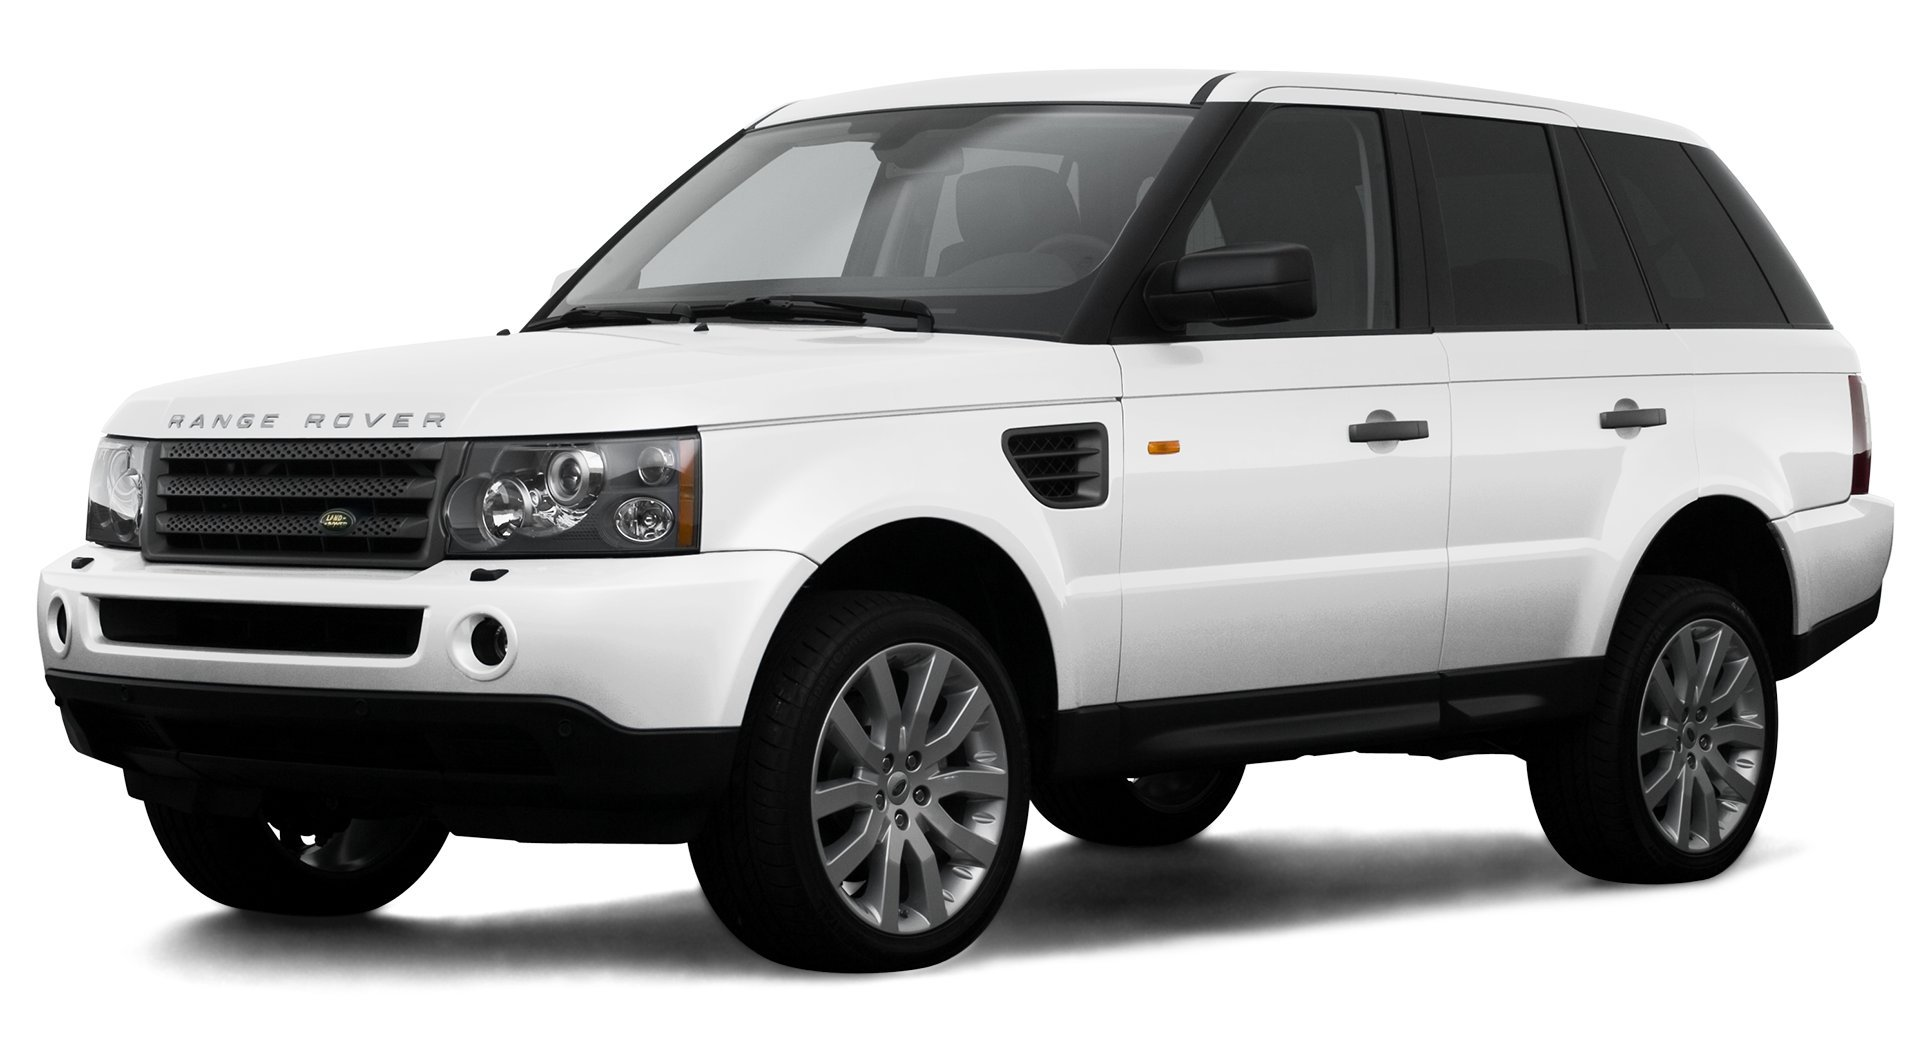 2008 land rover range rover reviews images and specs vehicles. Black Bedroom Furniture Sets. Home Design Ideas